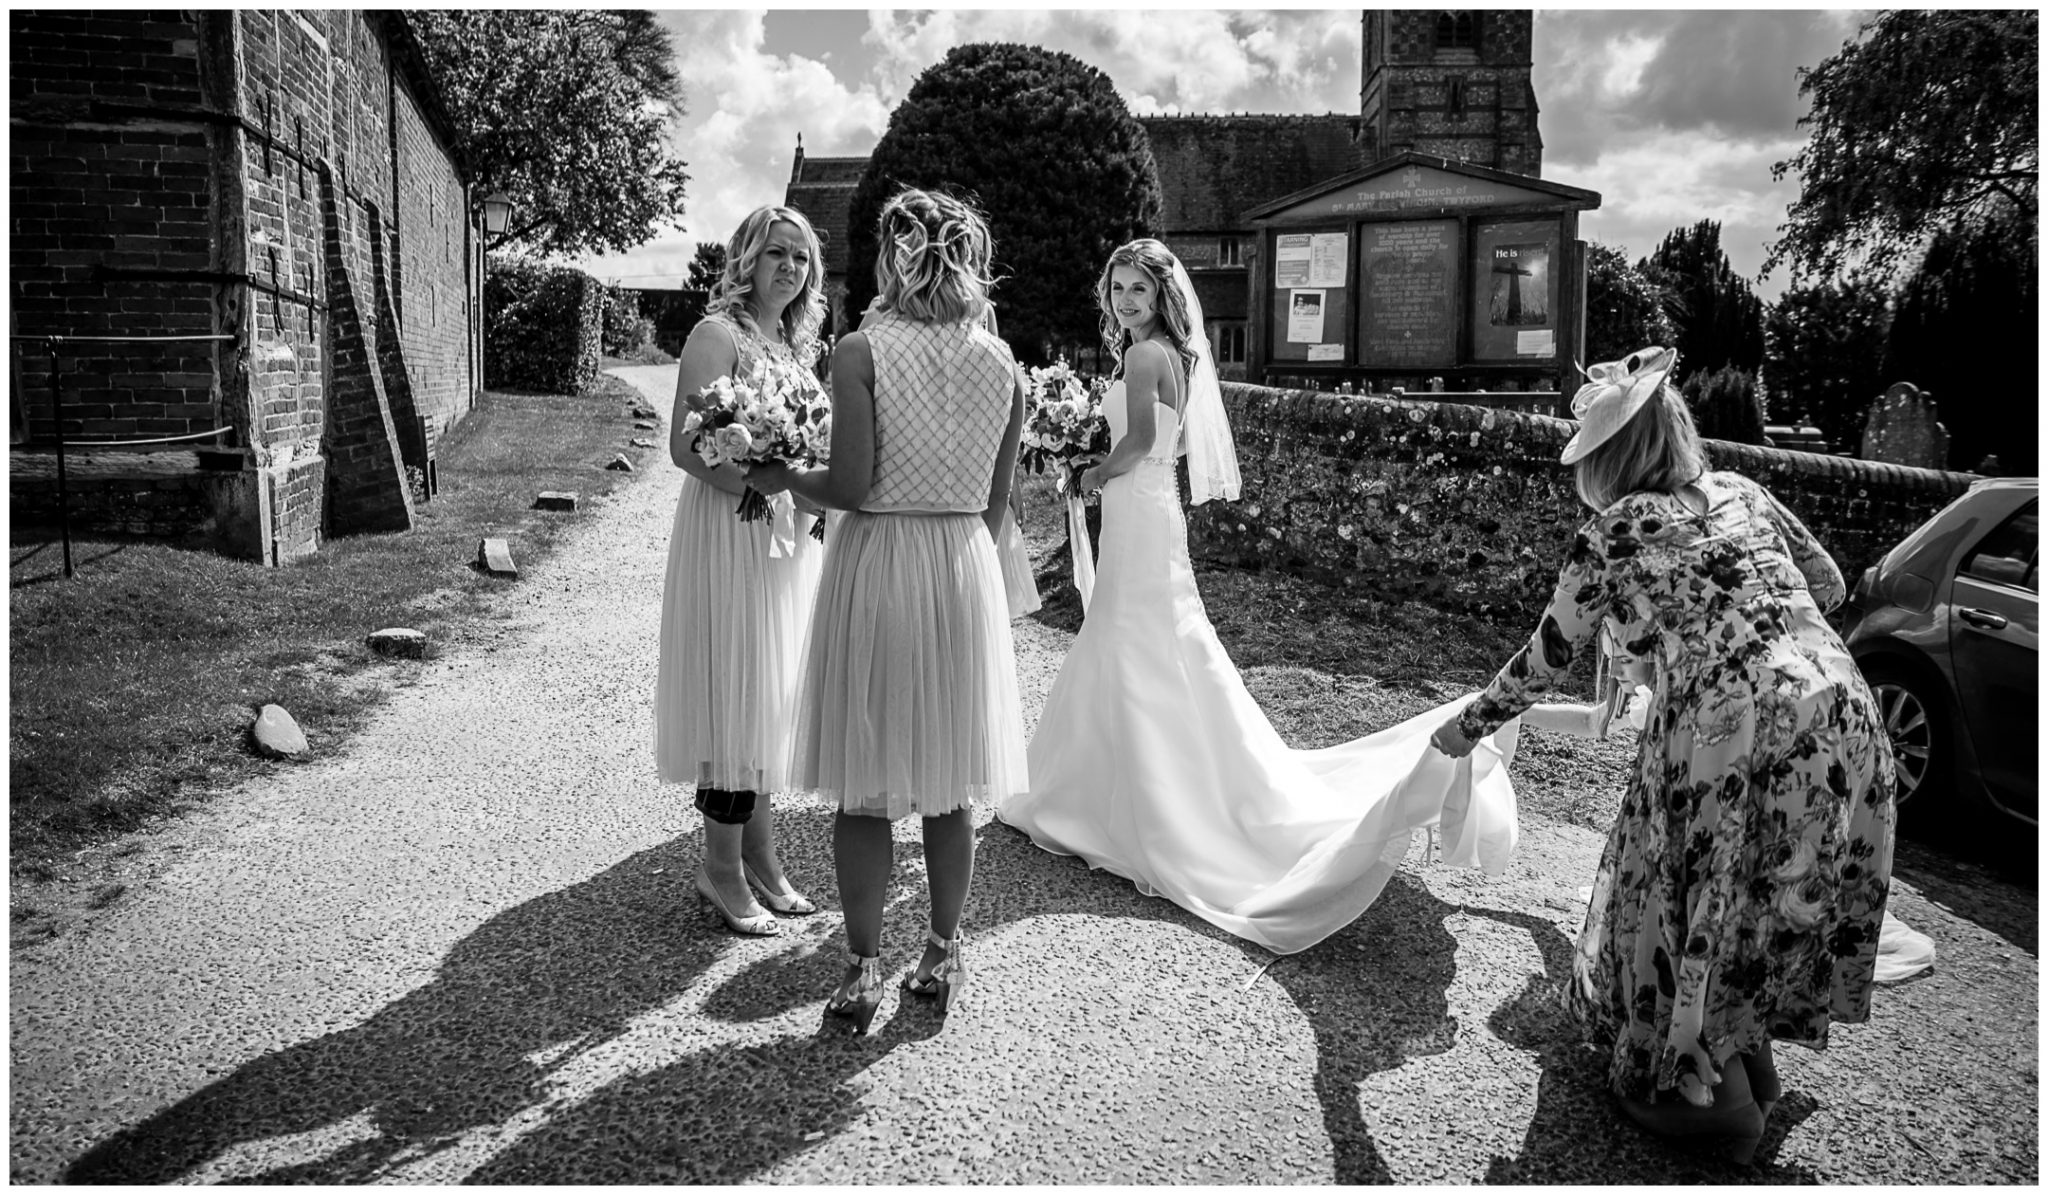 Bride's mother arranges bride's dress before start of wedding at Twyford Church of St Mary's